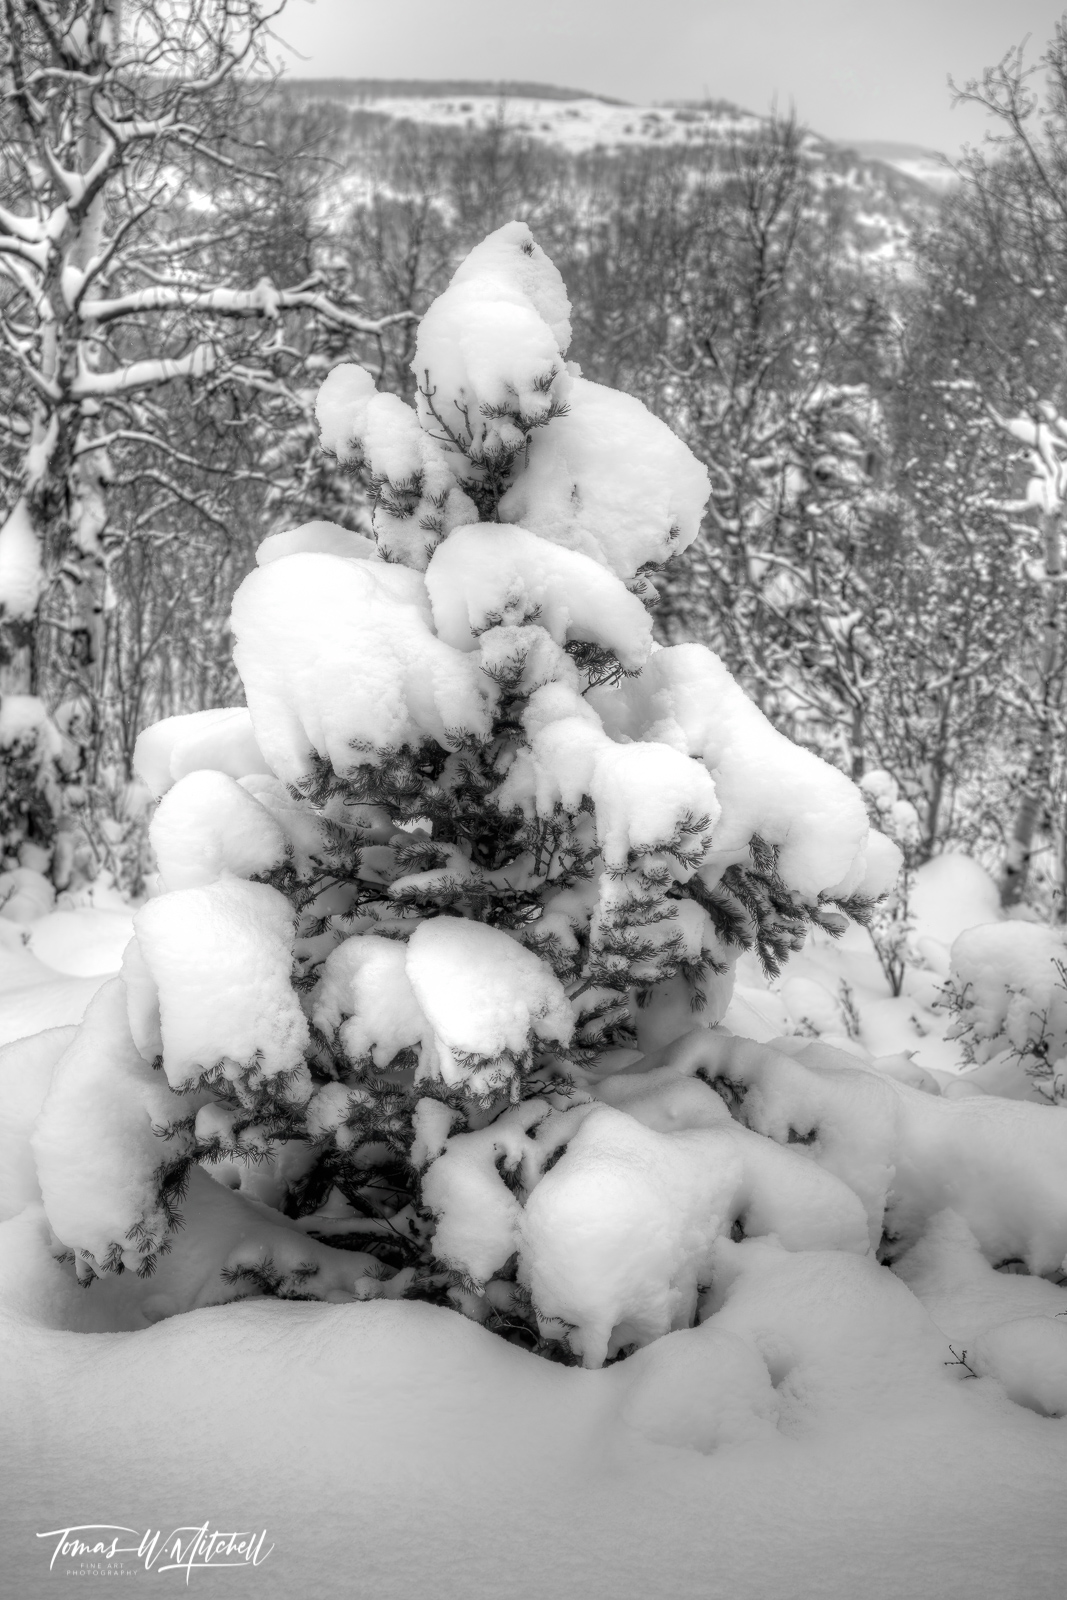 UINTA-WASATCH-CACHE NATIONAL FOREST, UTAH, limited edition, fine art, prints, snowstorm, photographing, pine, tree, powder, photograph, snow,, photo